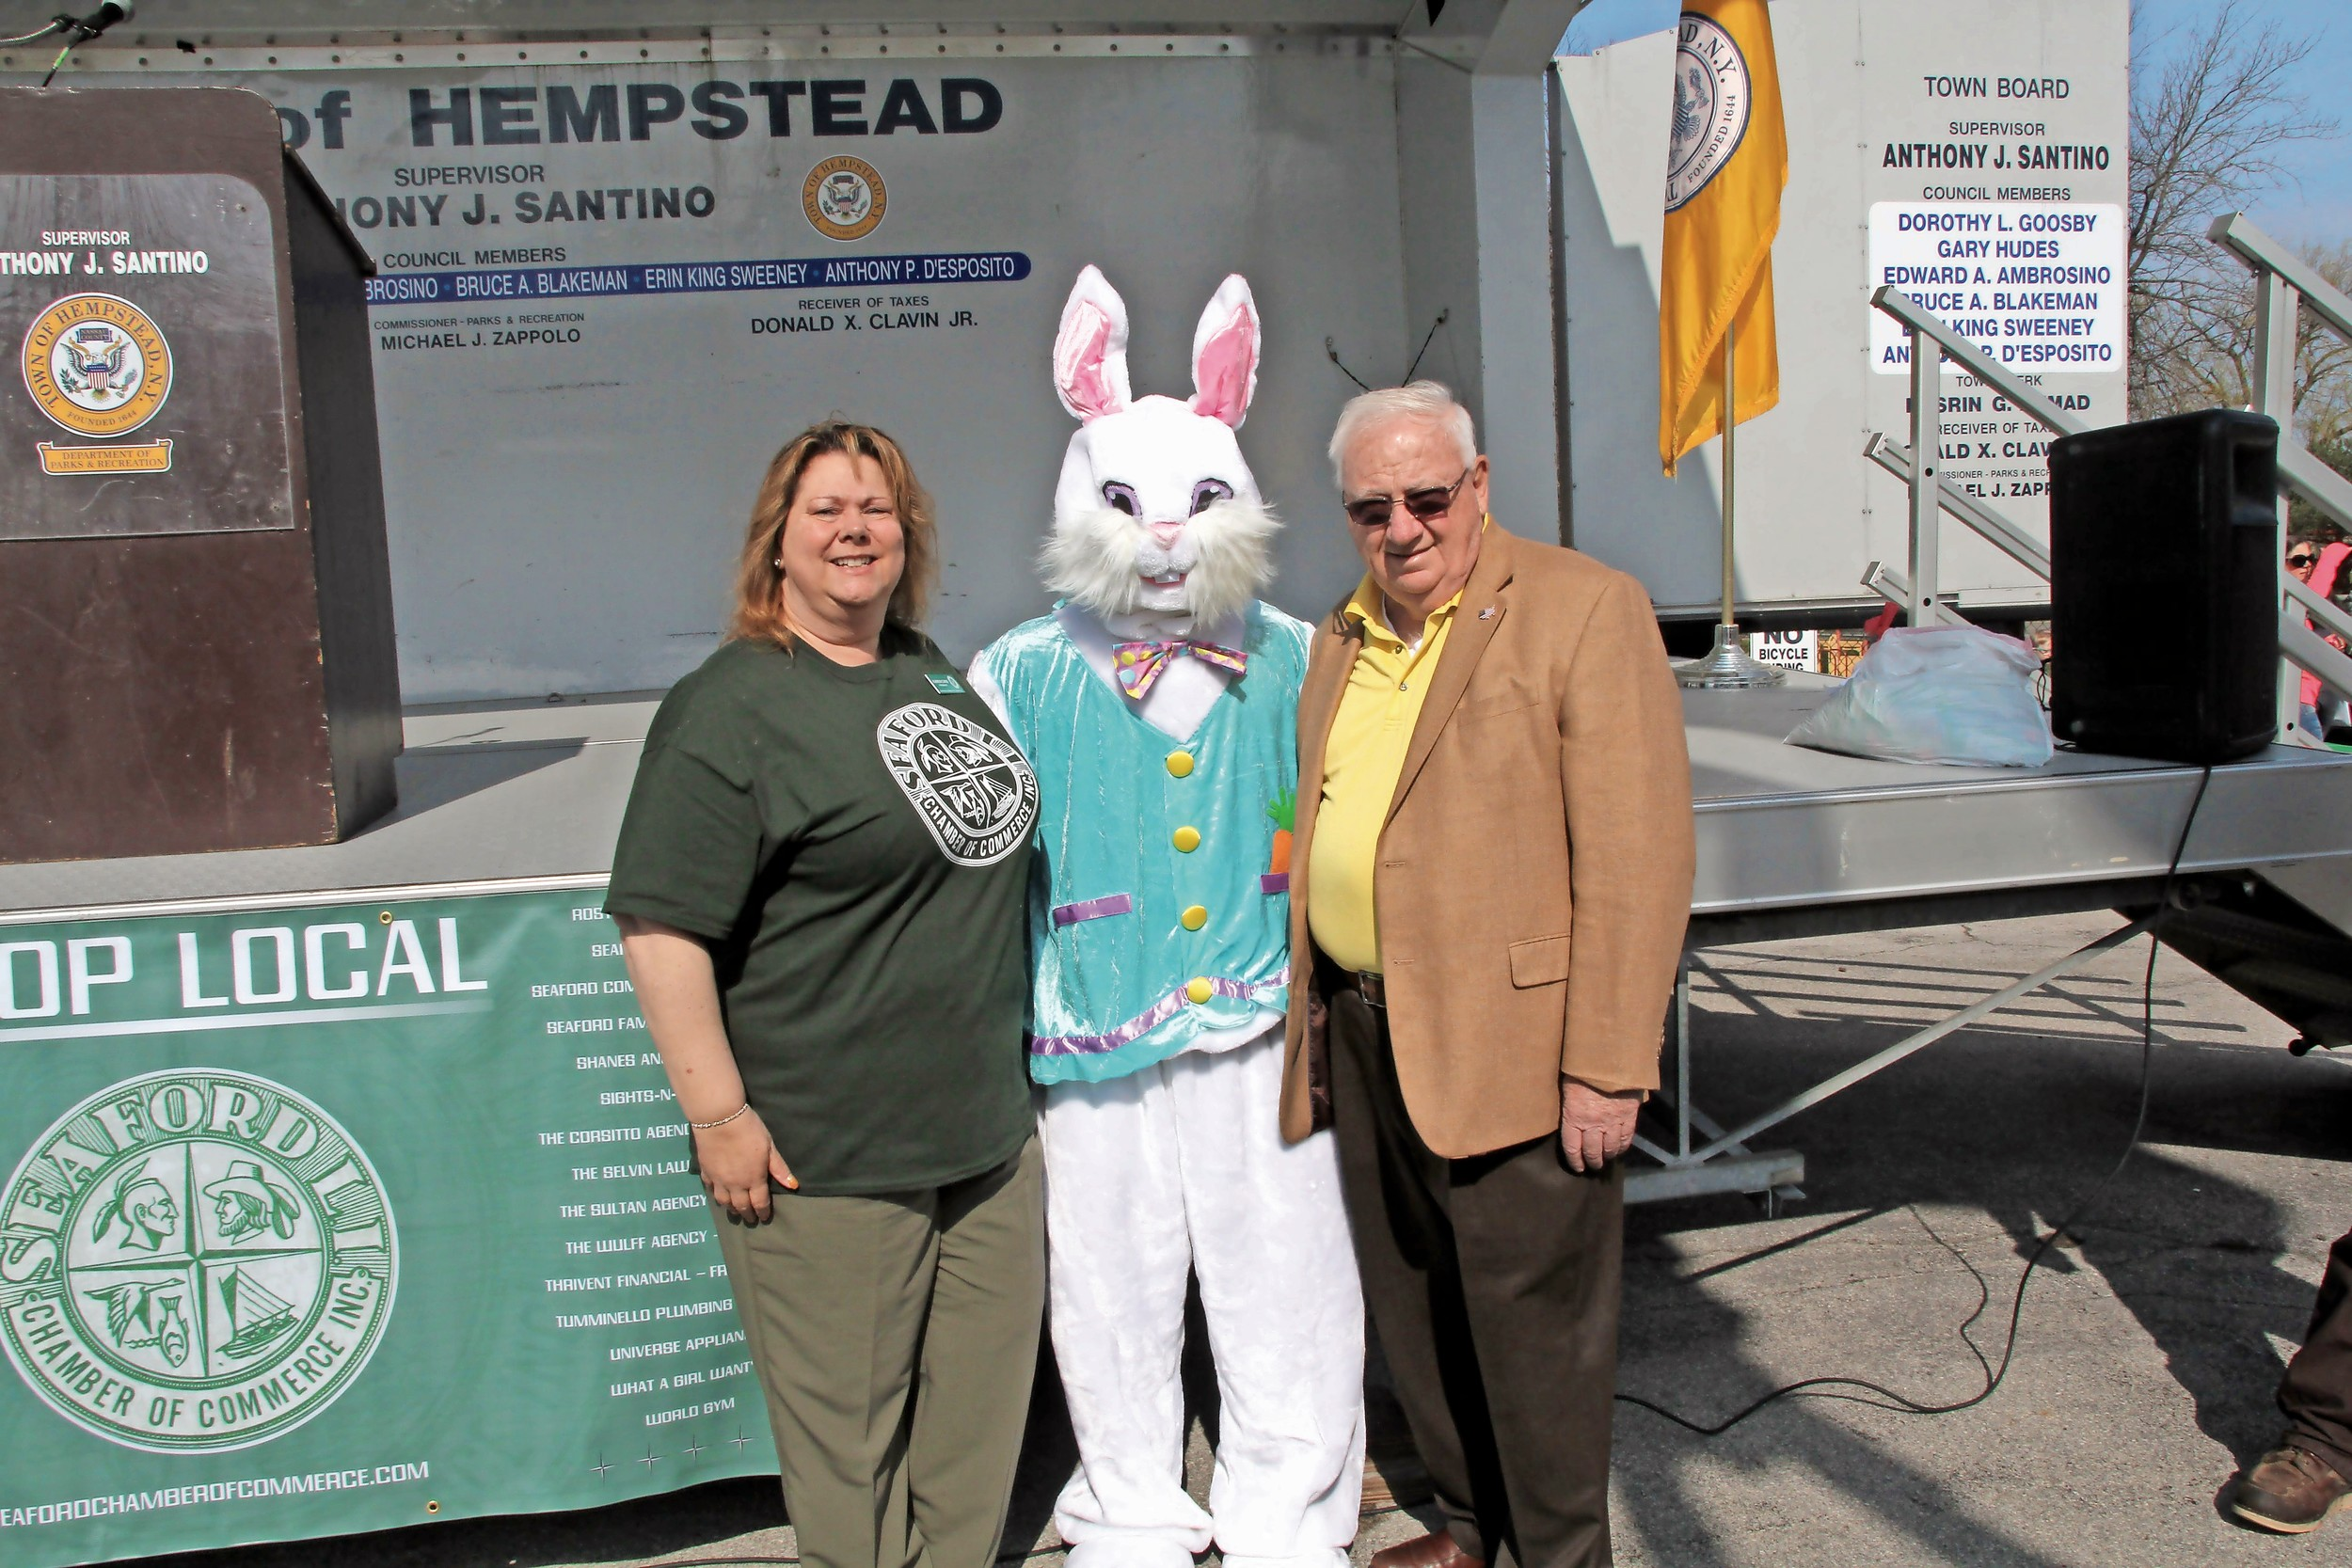 Seaford Chamber of Commerce President Karen Cass and State Sen. John Brooks met Peter Rabbit.